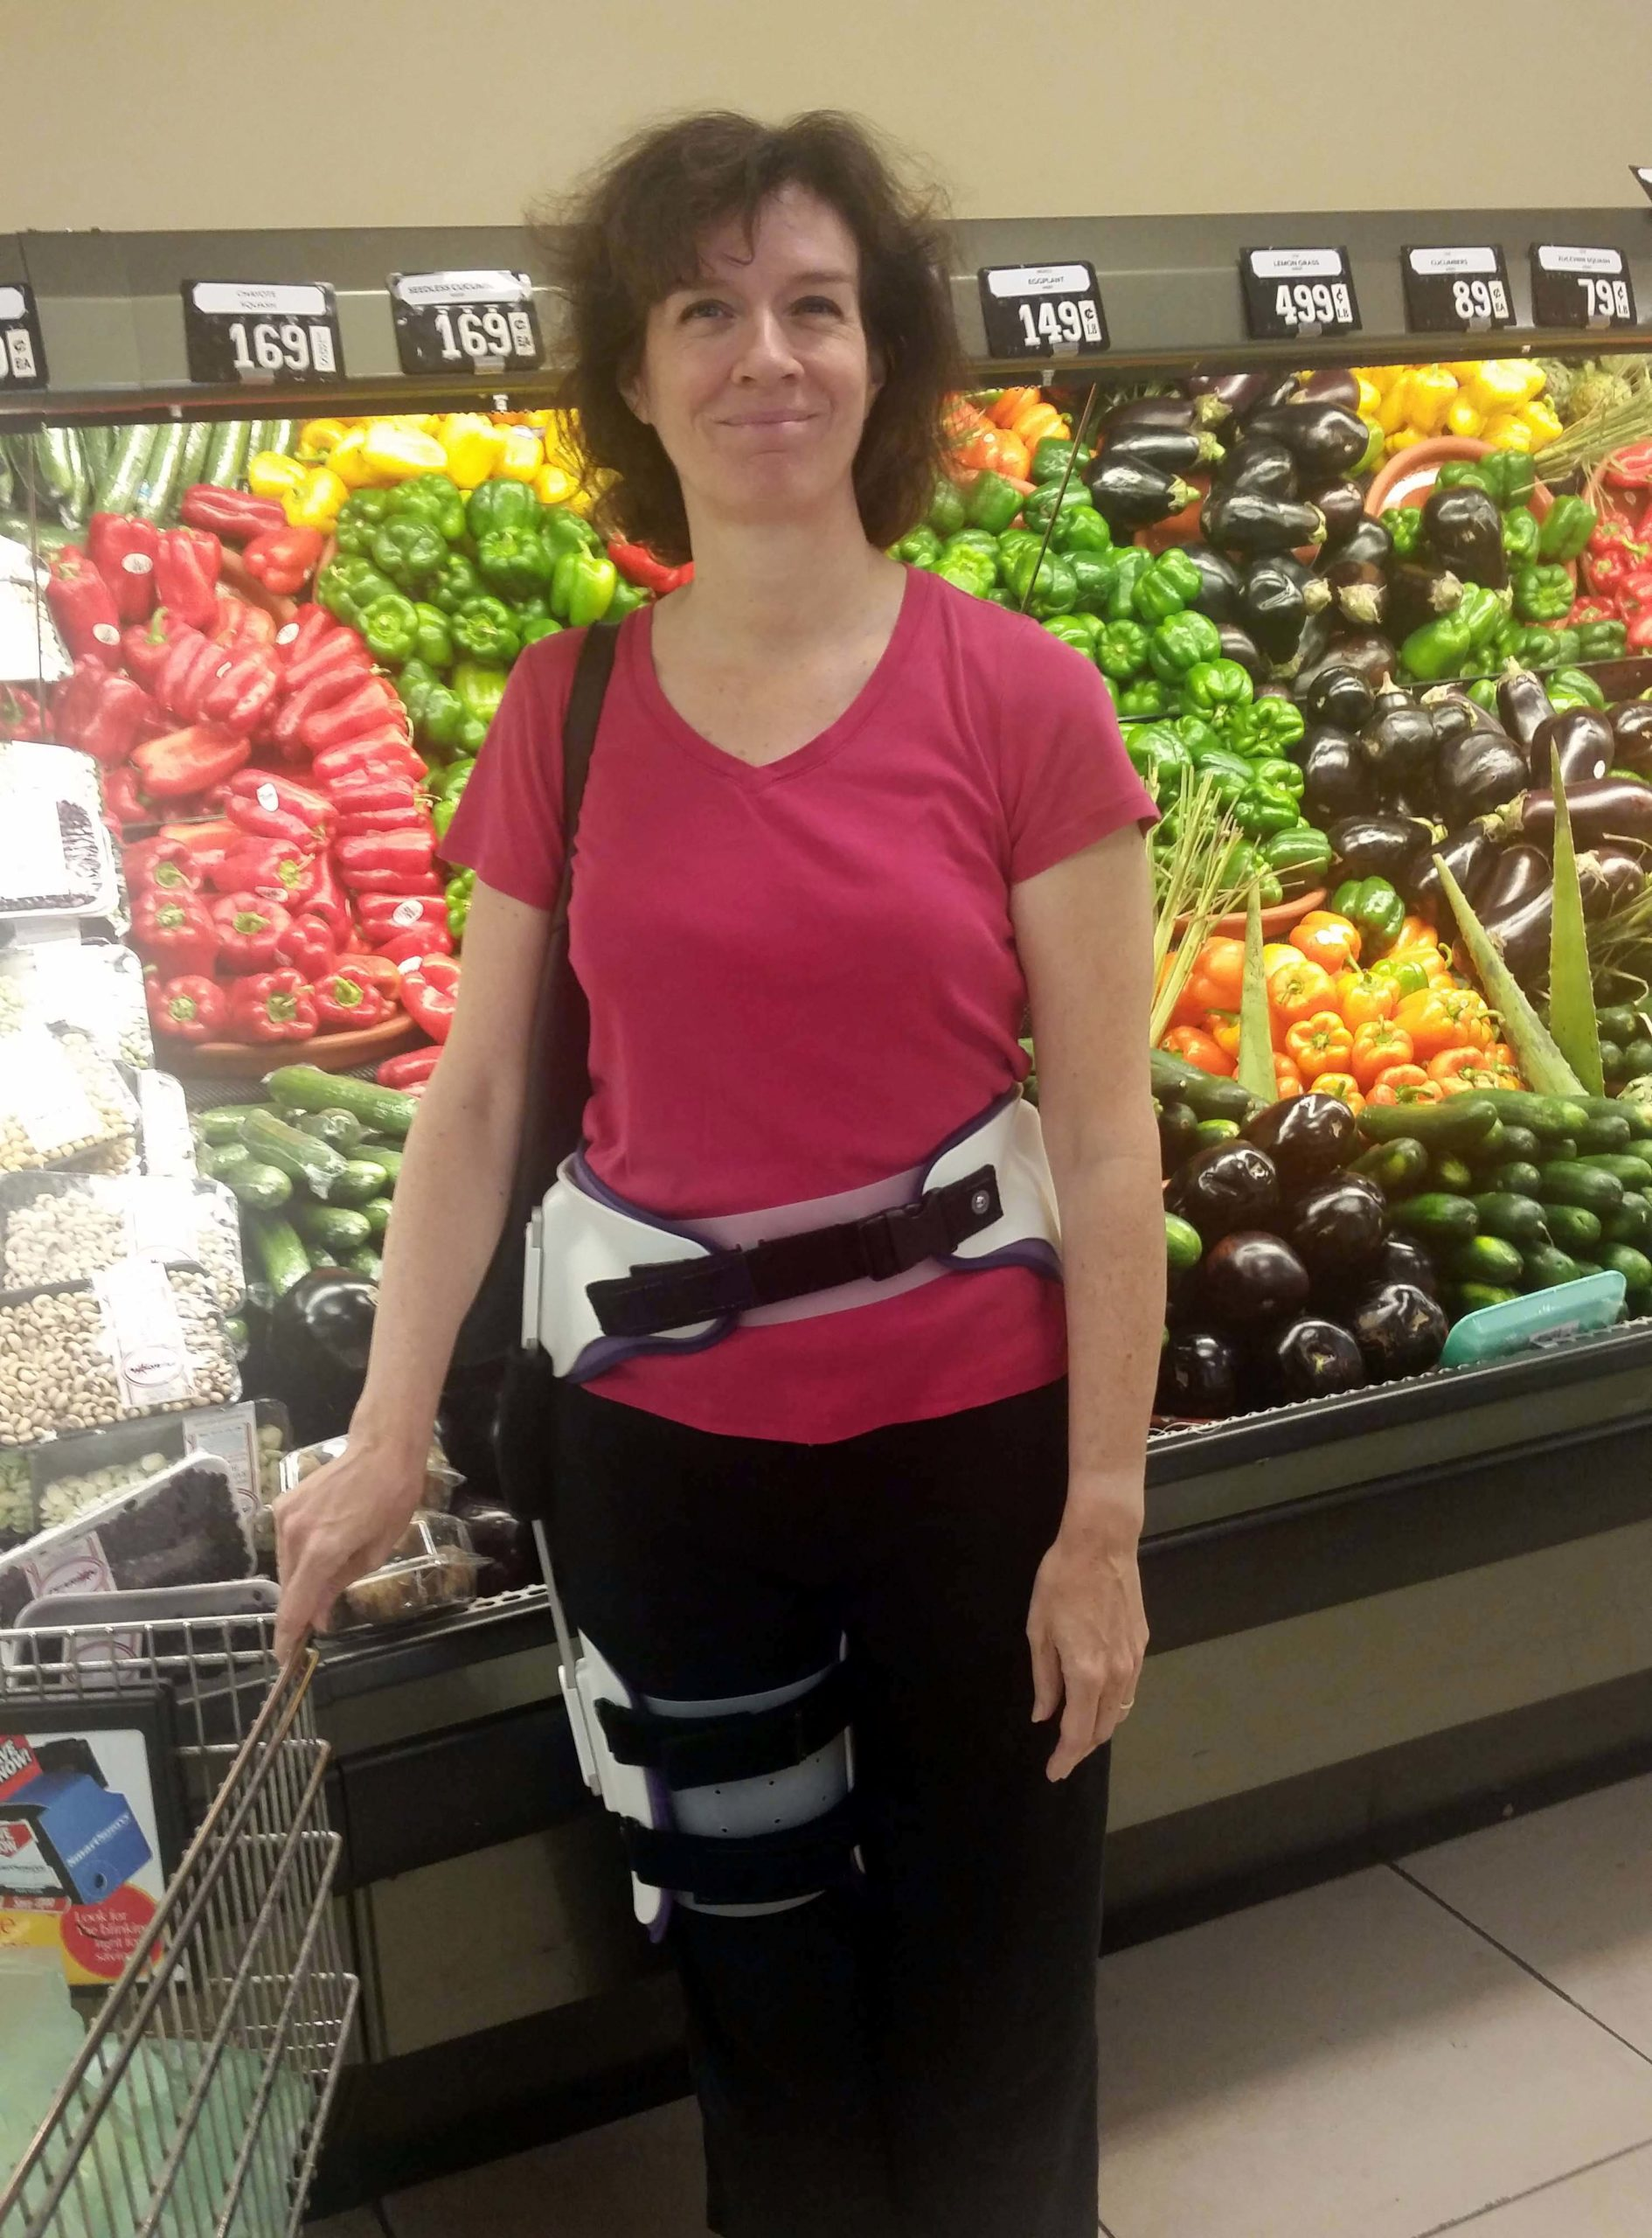 Frontal view of woman wearing the body brace prescribed after hip labral tear surgery